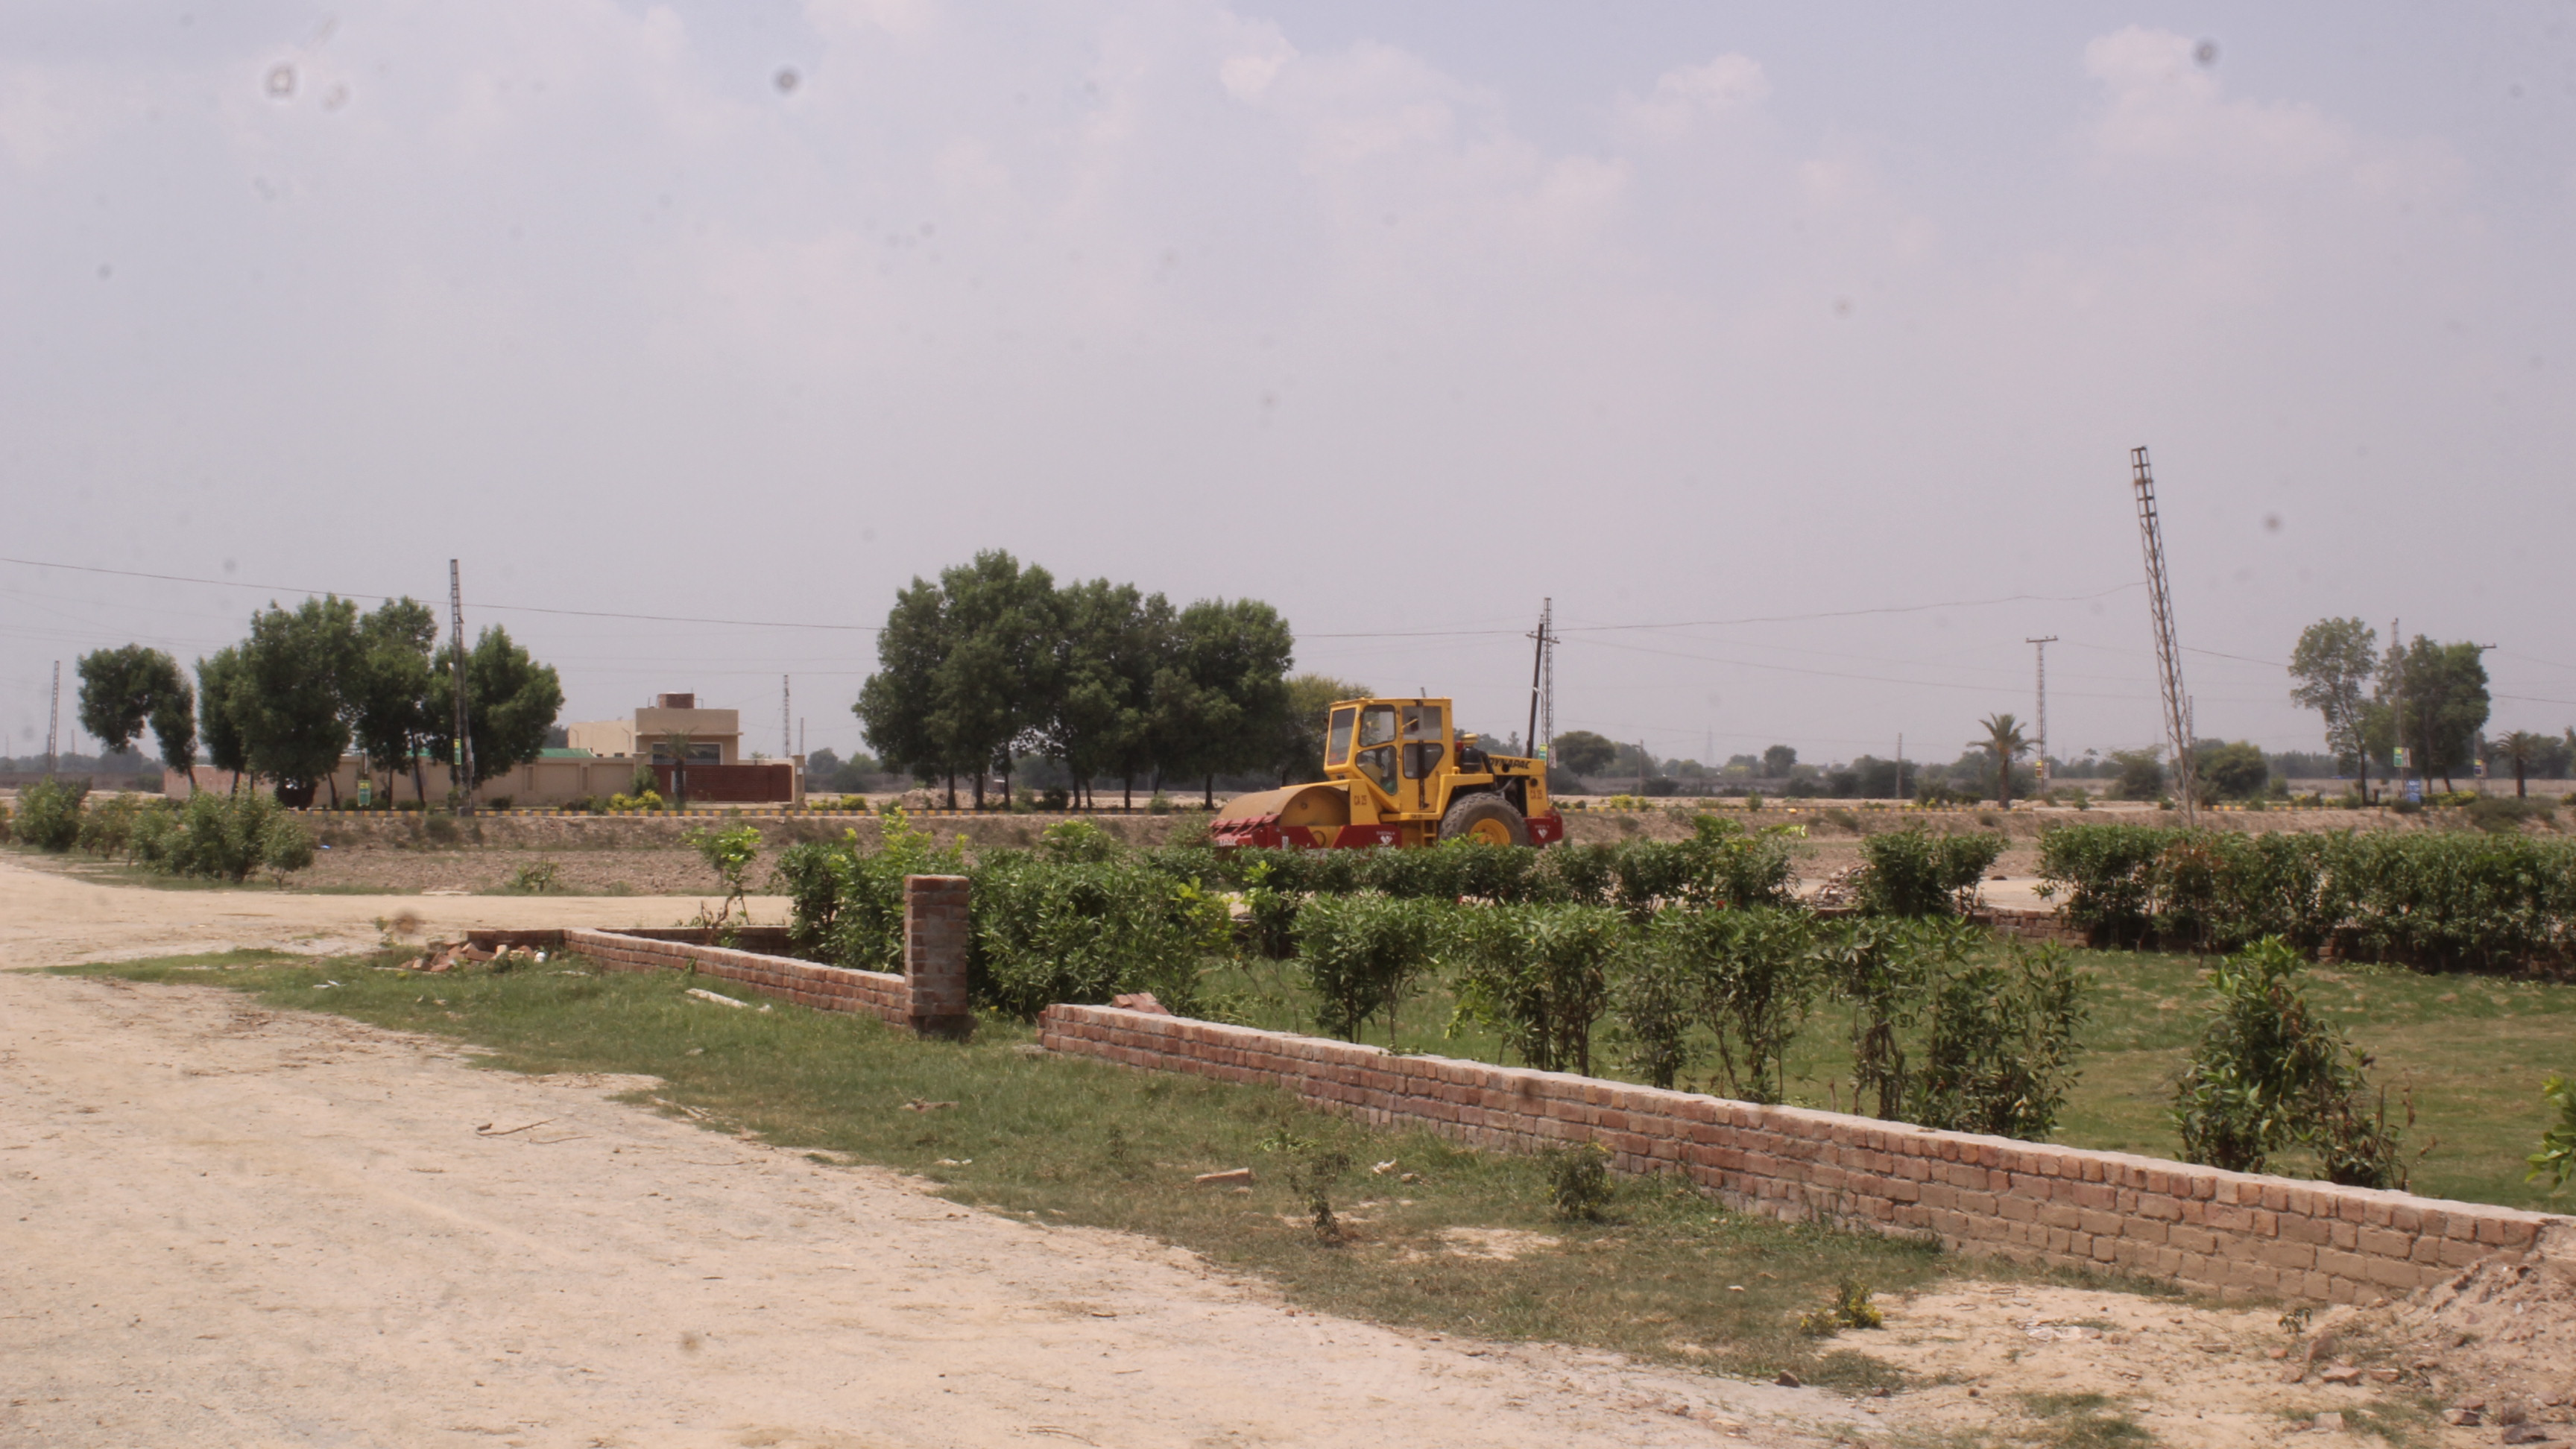 2 Kanal Plot For Sale 60 Feet Road Available Possession Very Good Location And Very Low Price